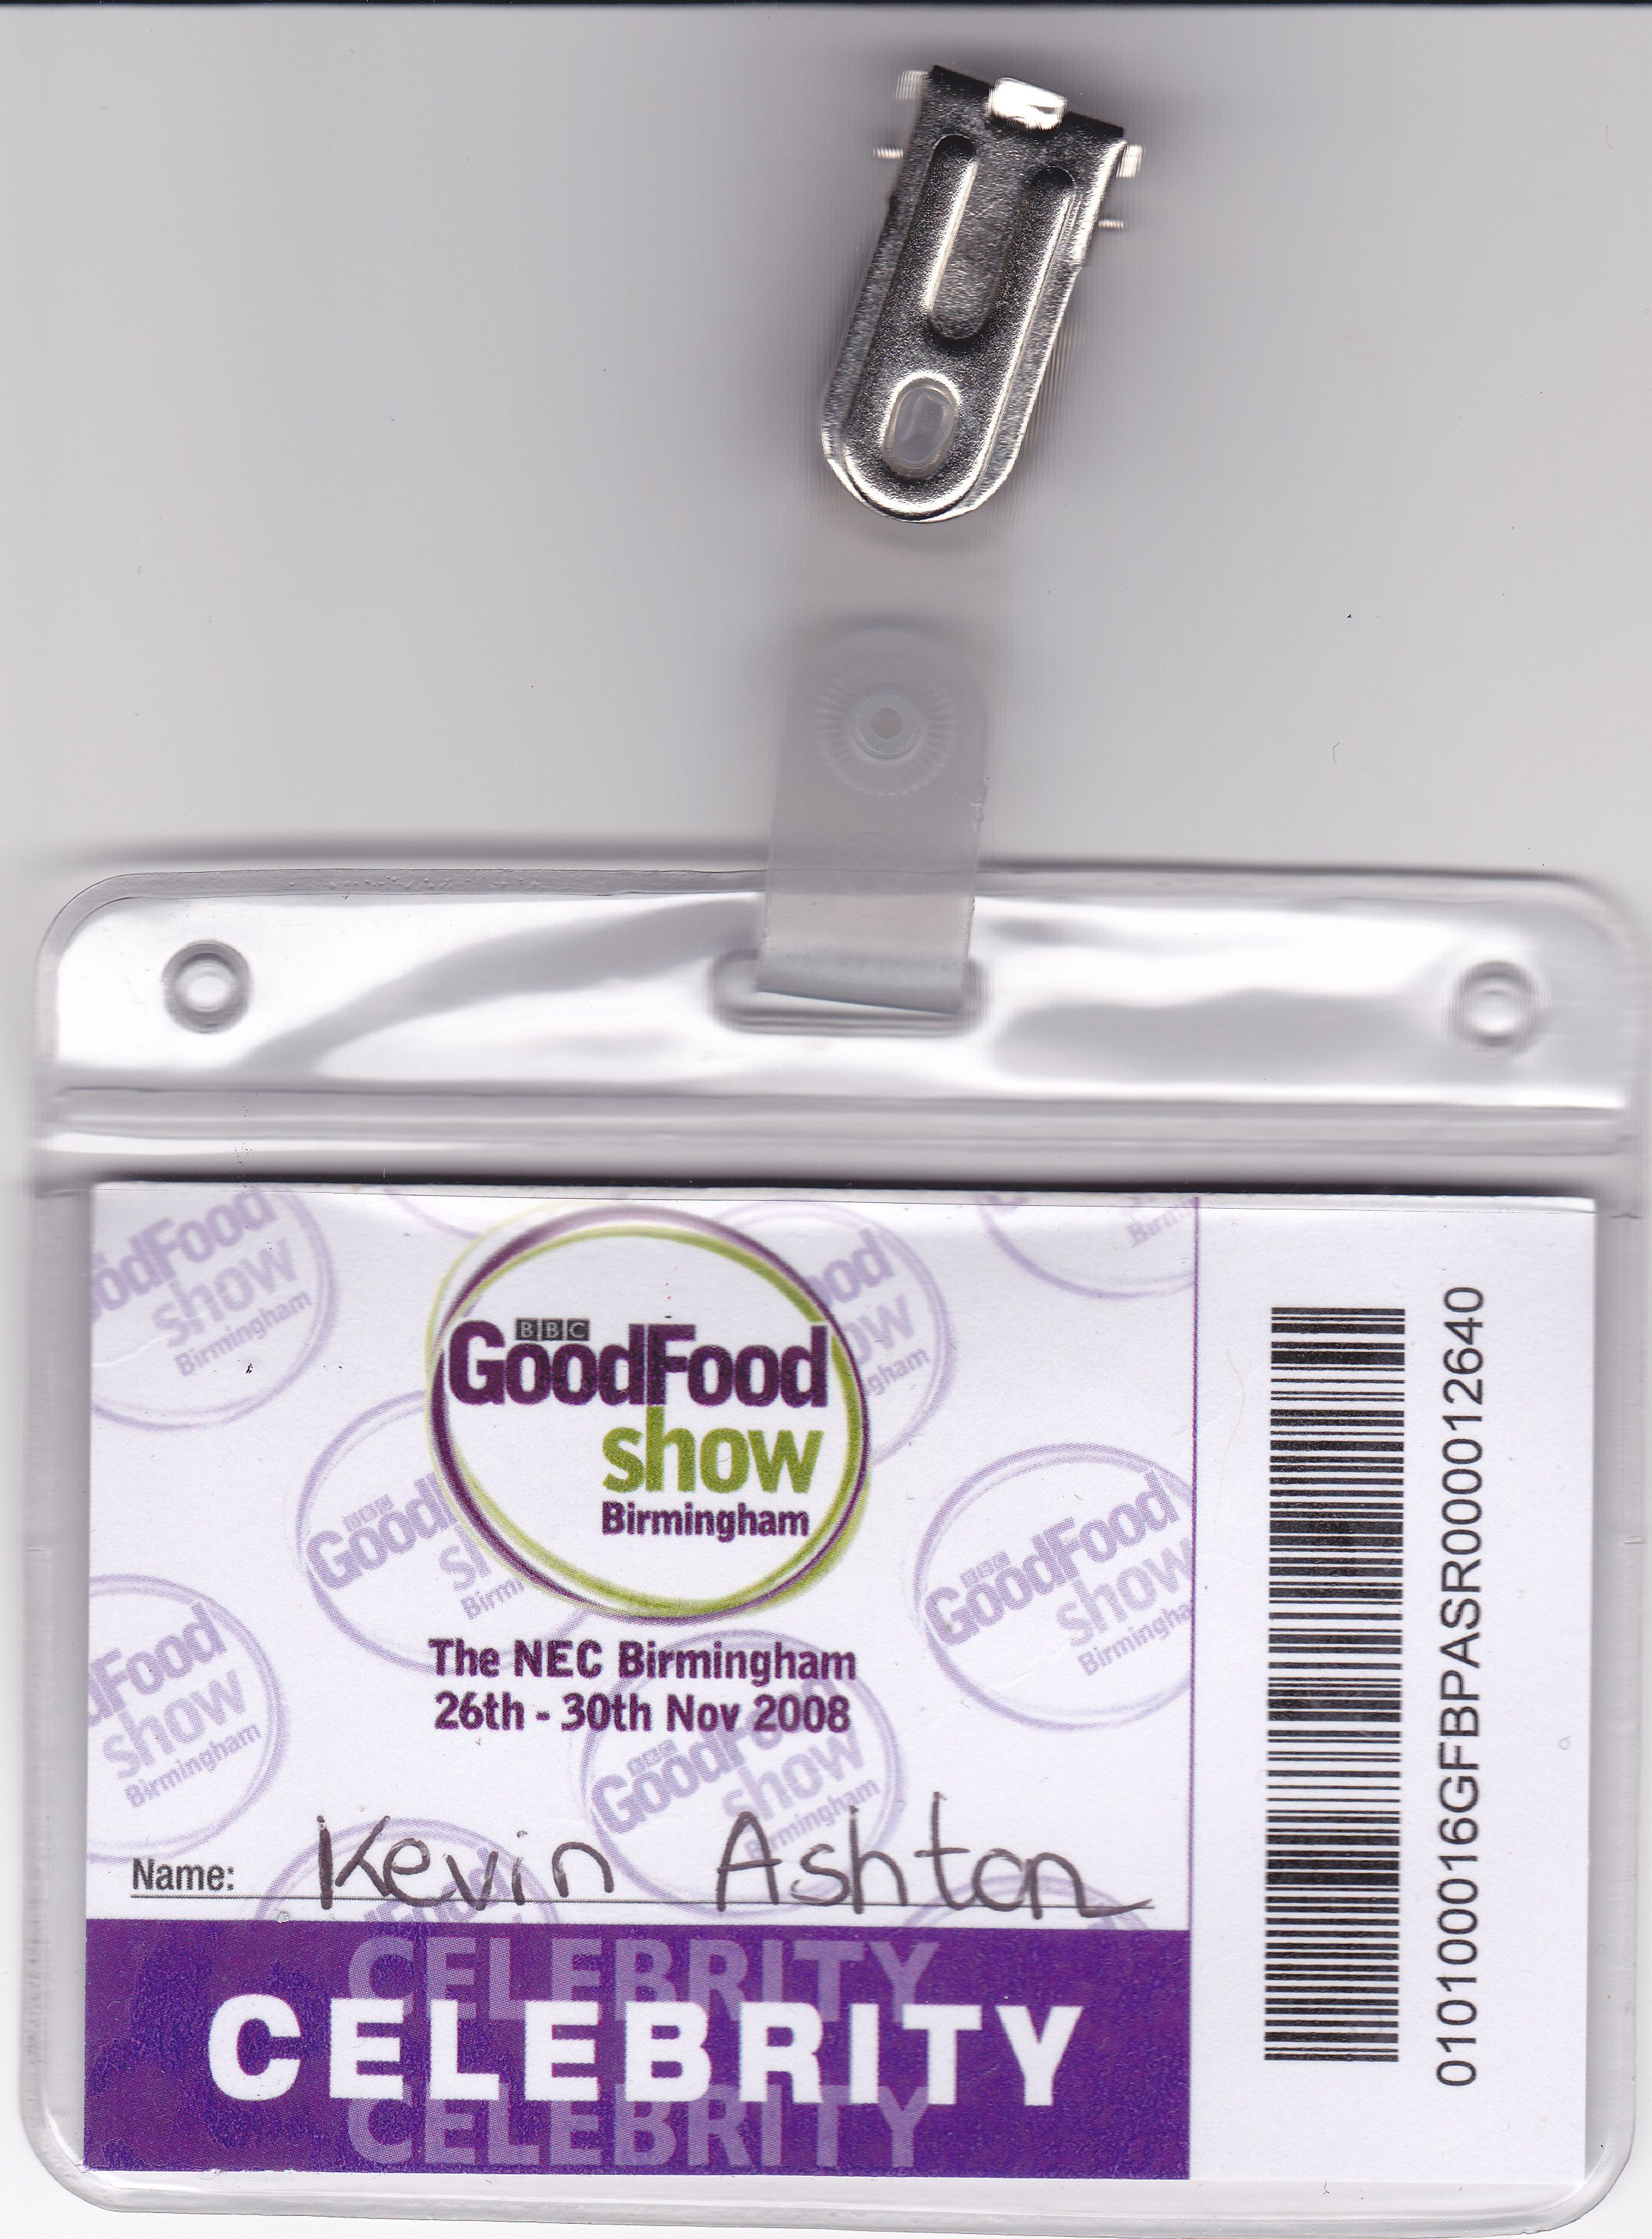 One of my BBC Good Food Badges.  That gets you escorted through the crowds to the VIP area,   #bbc #goodfoodshow #nec #chef #demonstrator